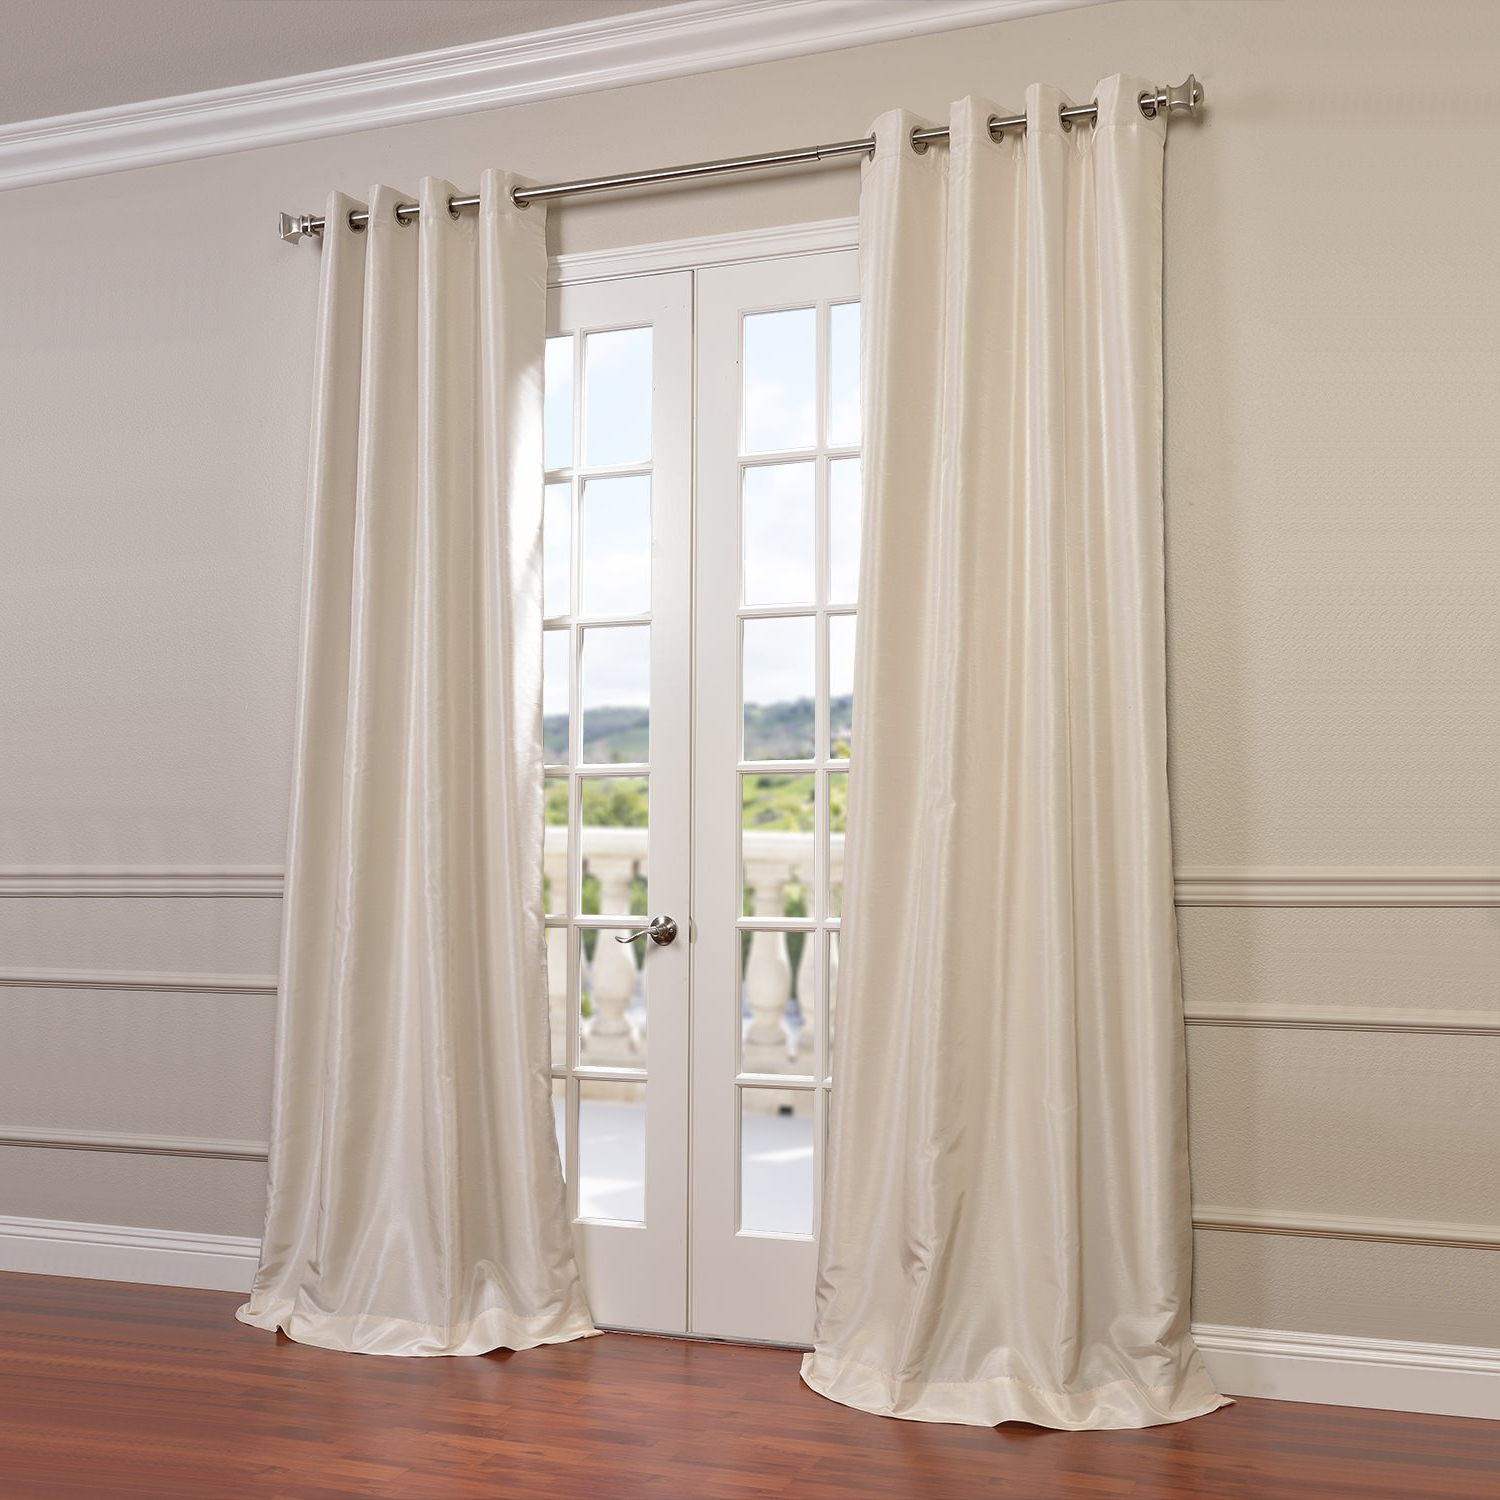 Well Known Off White Vintage Faux Textured Silk Curtains Regarding Half Price Drapes Pdch Kbs2 84 Grbo Grommet Blackout Vintage Textured Faux  Dupioni Silk Curtain, Off White (View 20 of 20)